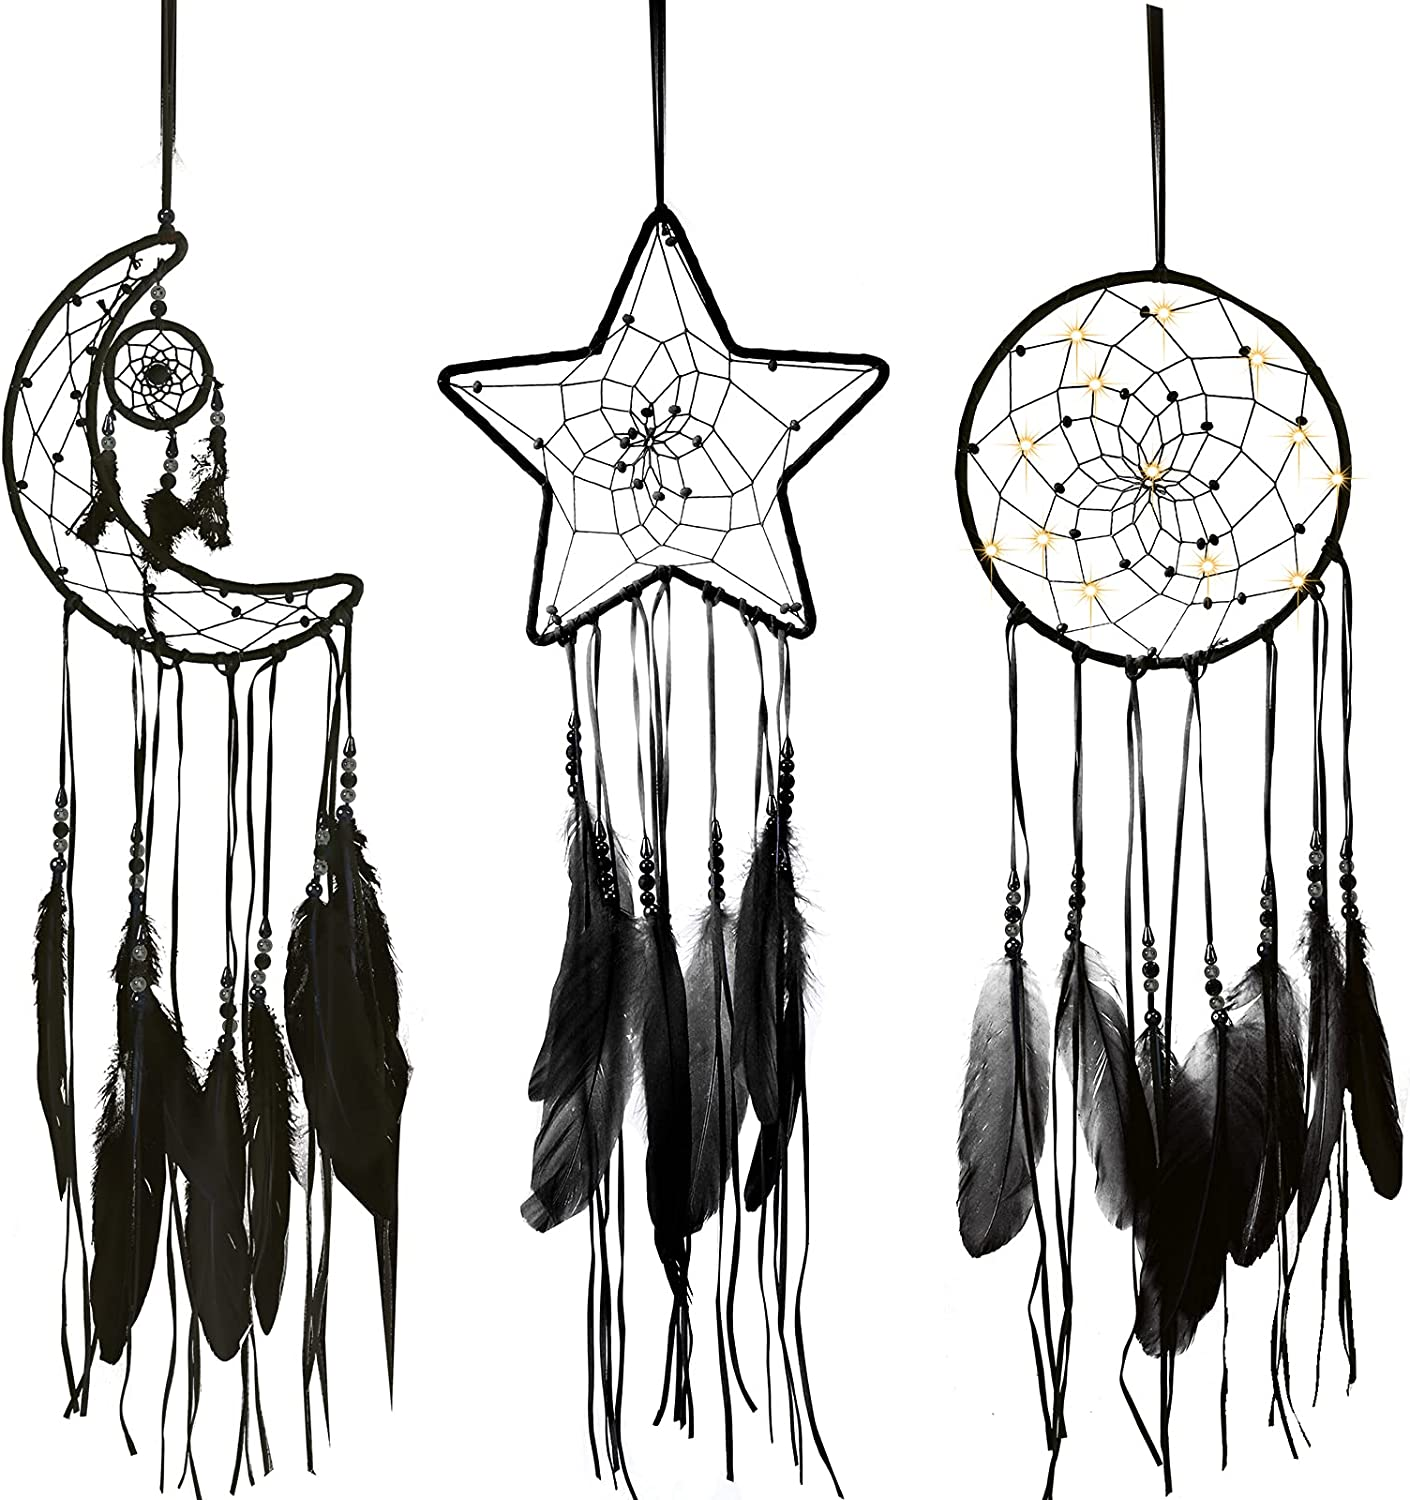 Jetec 3 Pieces Macrame Dream Catcher Moon Sun Star Design Woven Wall Hanging Decor Handmade Traditional Design with 3 LED Light for Wall Hanging Home Decoration (Black)